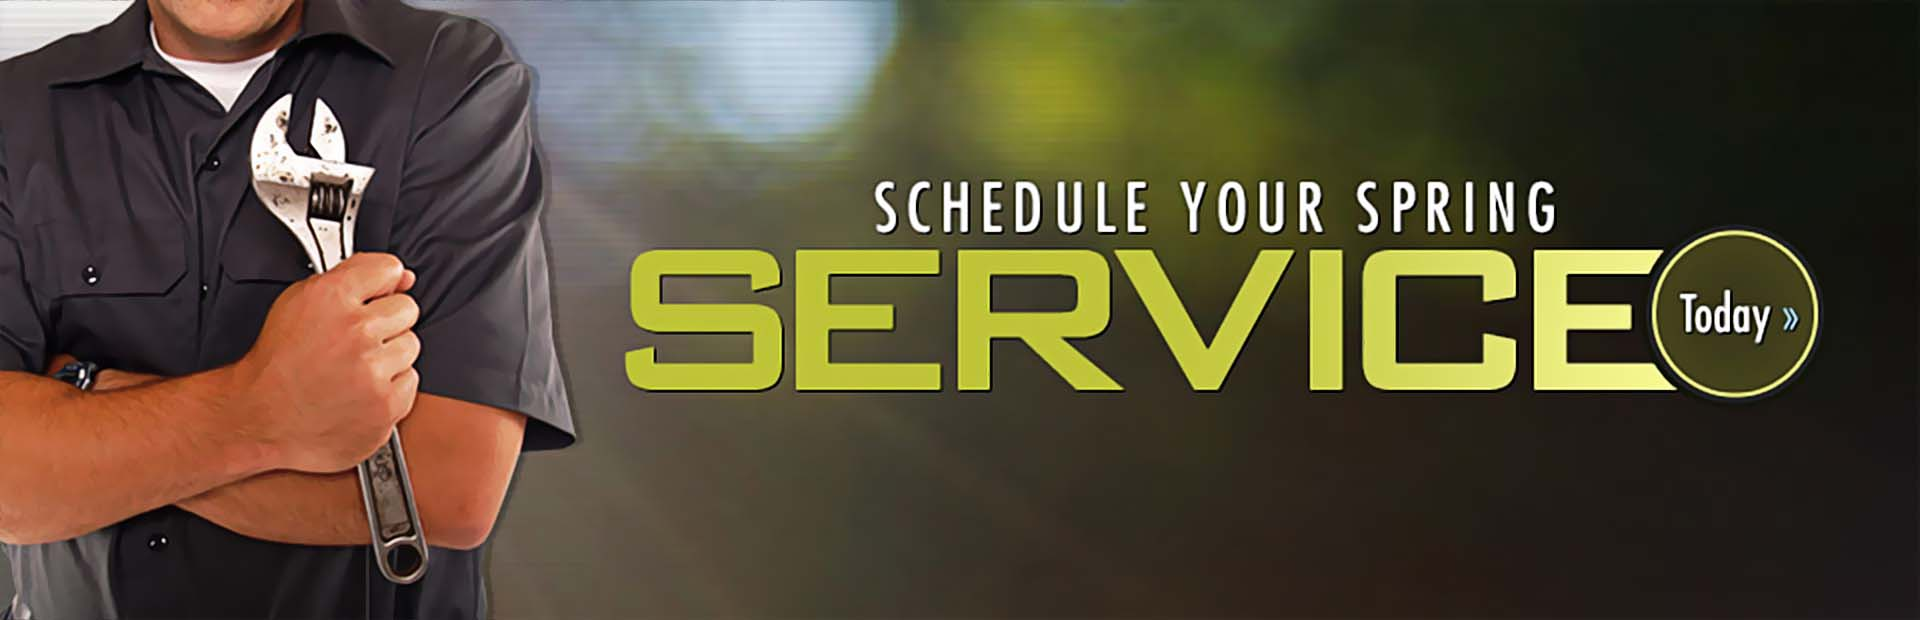 Schedule your spring service today.